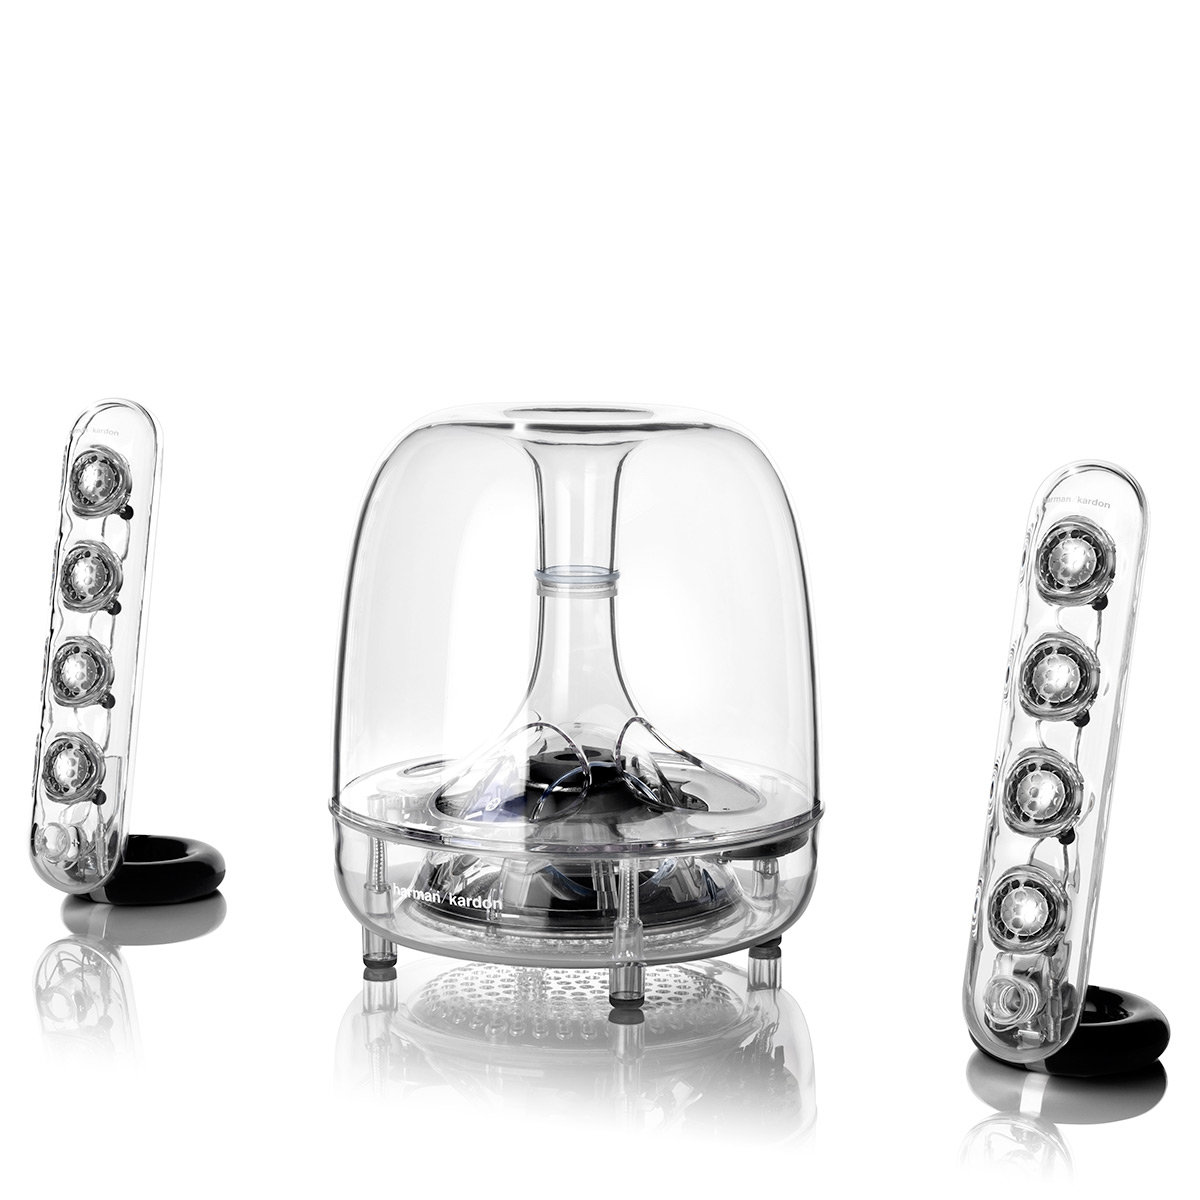 harman kardon soundsticks wireless bluetooth. Black Bedroom Furniture Sets. Home Design Ideas